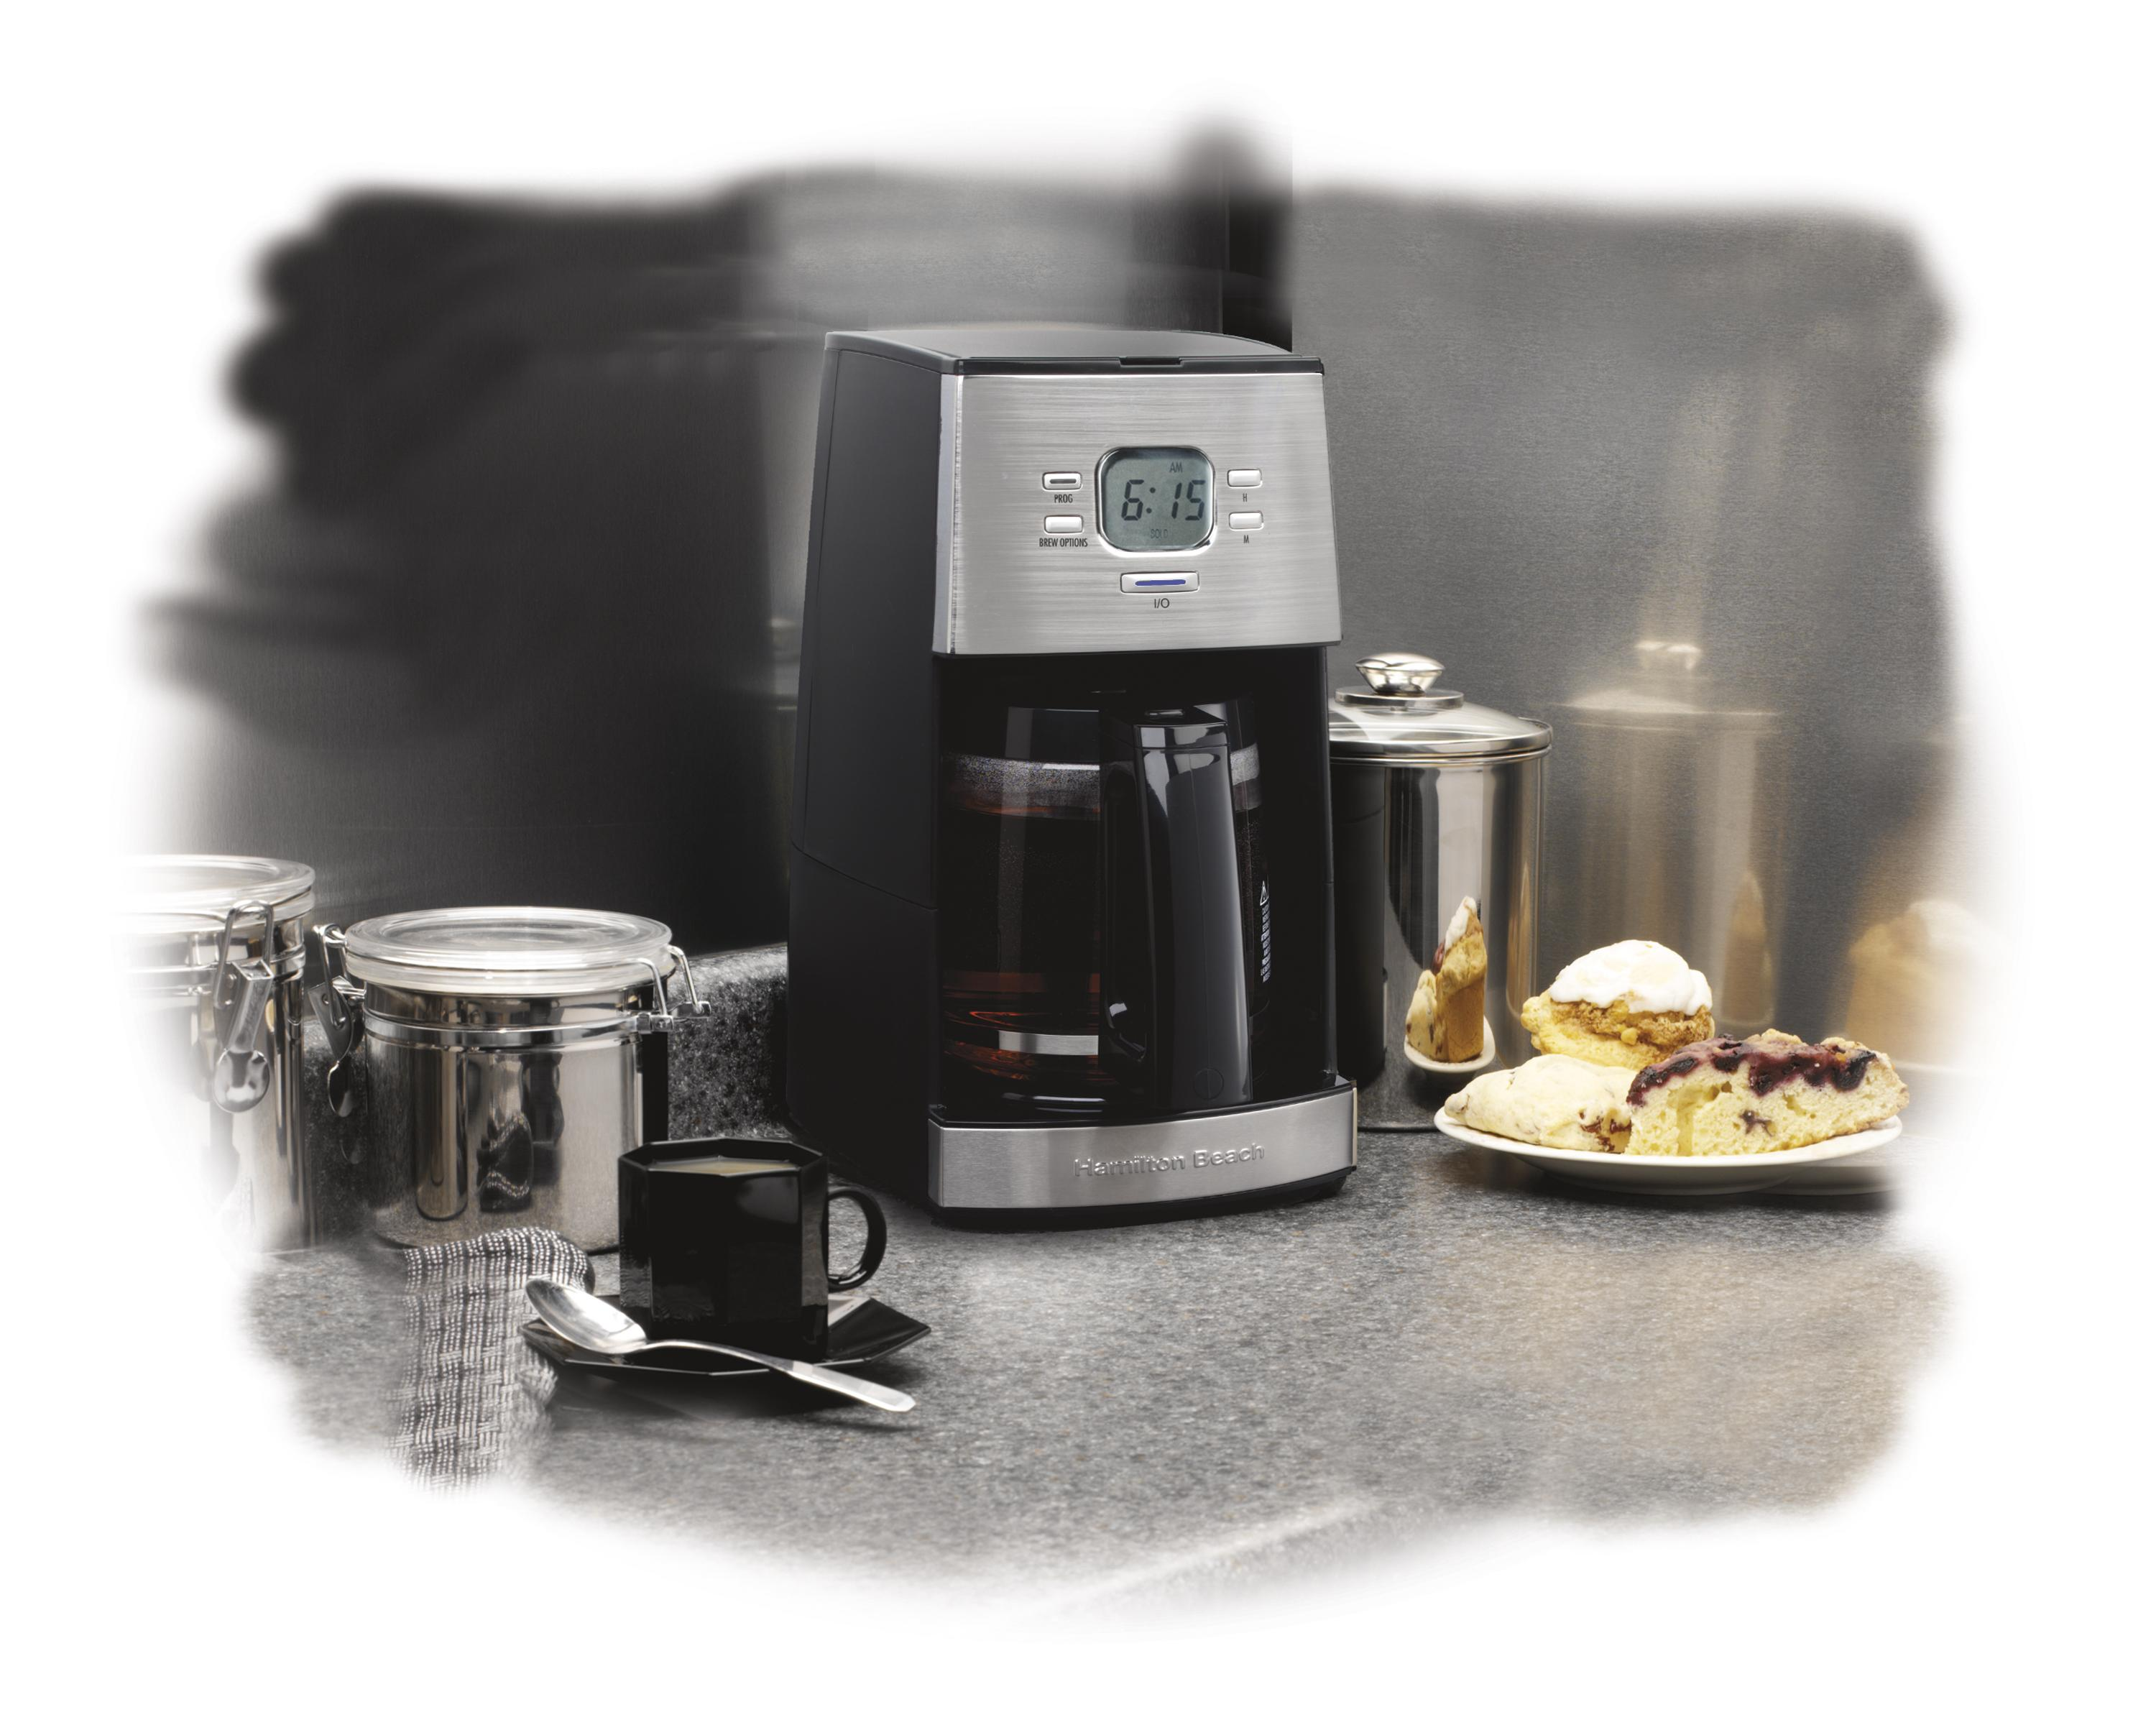 Coffee Maker K Cup And Pot Amazoncom Hamilton Beach 12 Cup Coffee Maker Ensemble 43254r